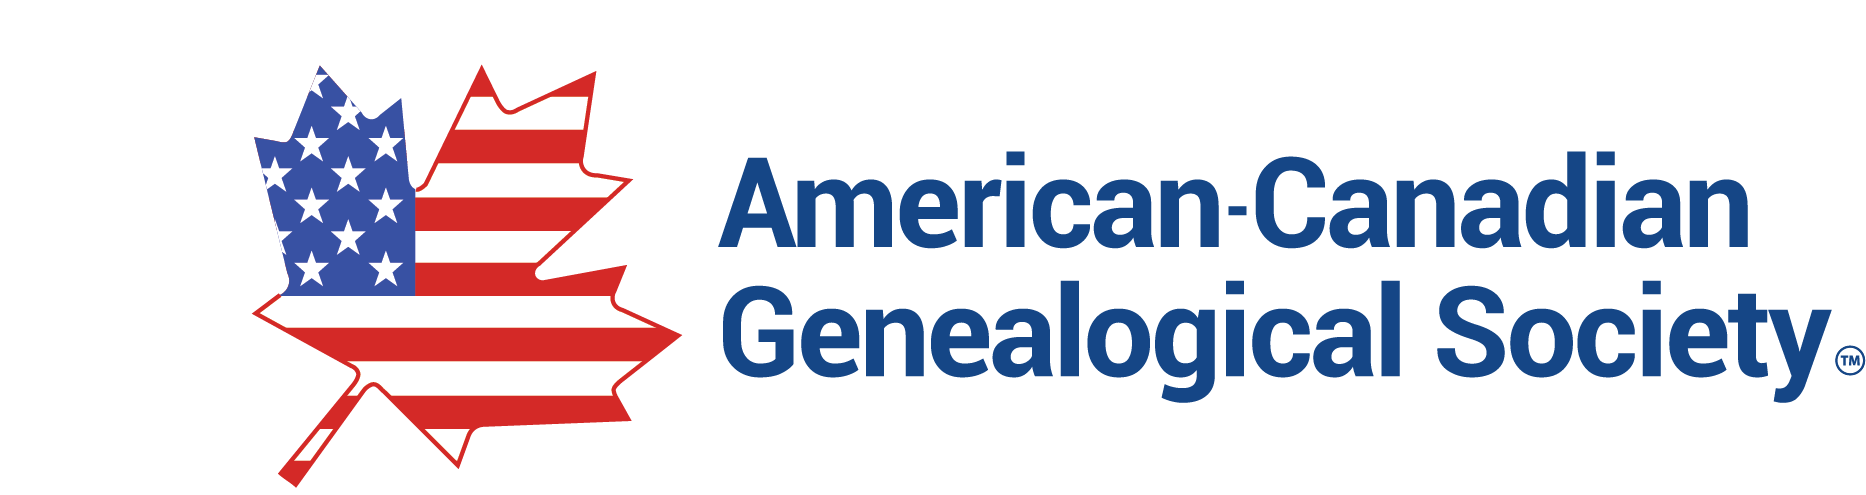 American-Canadian Genealogical Society